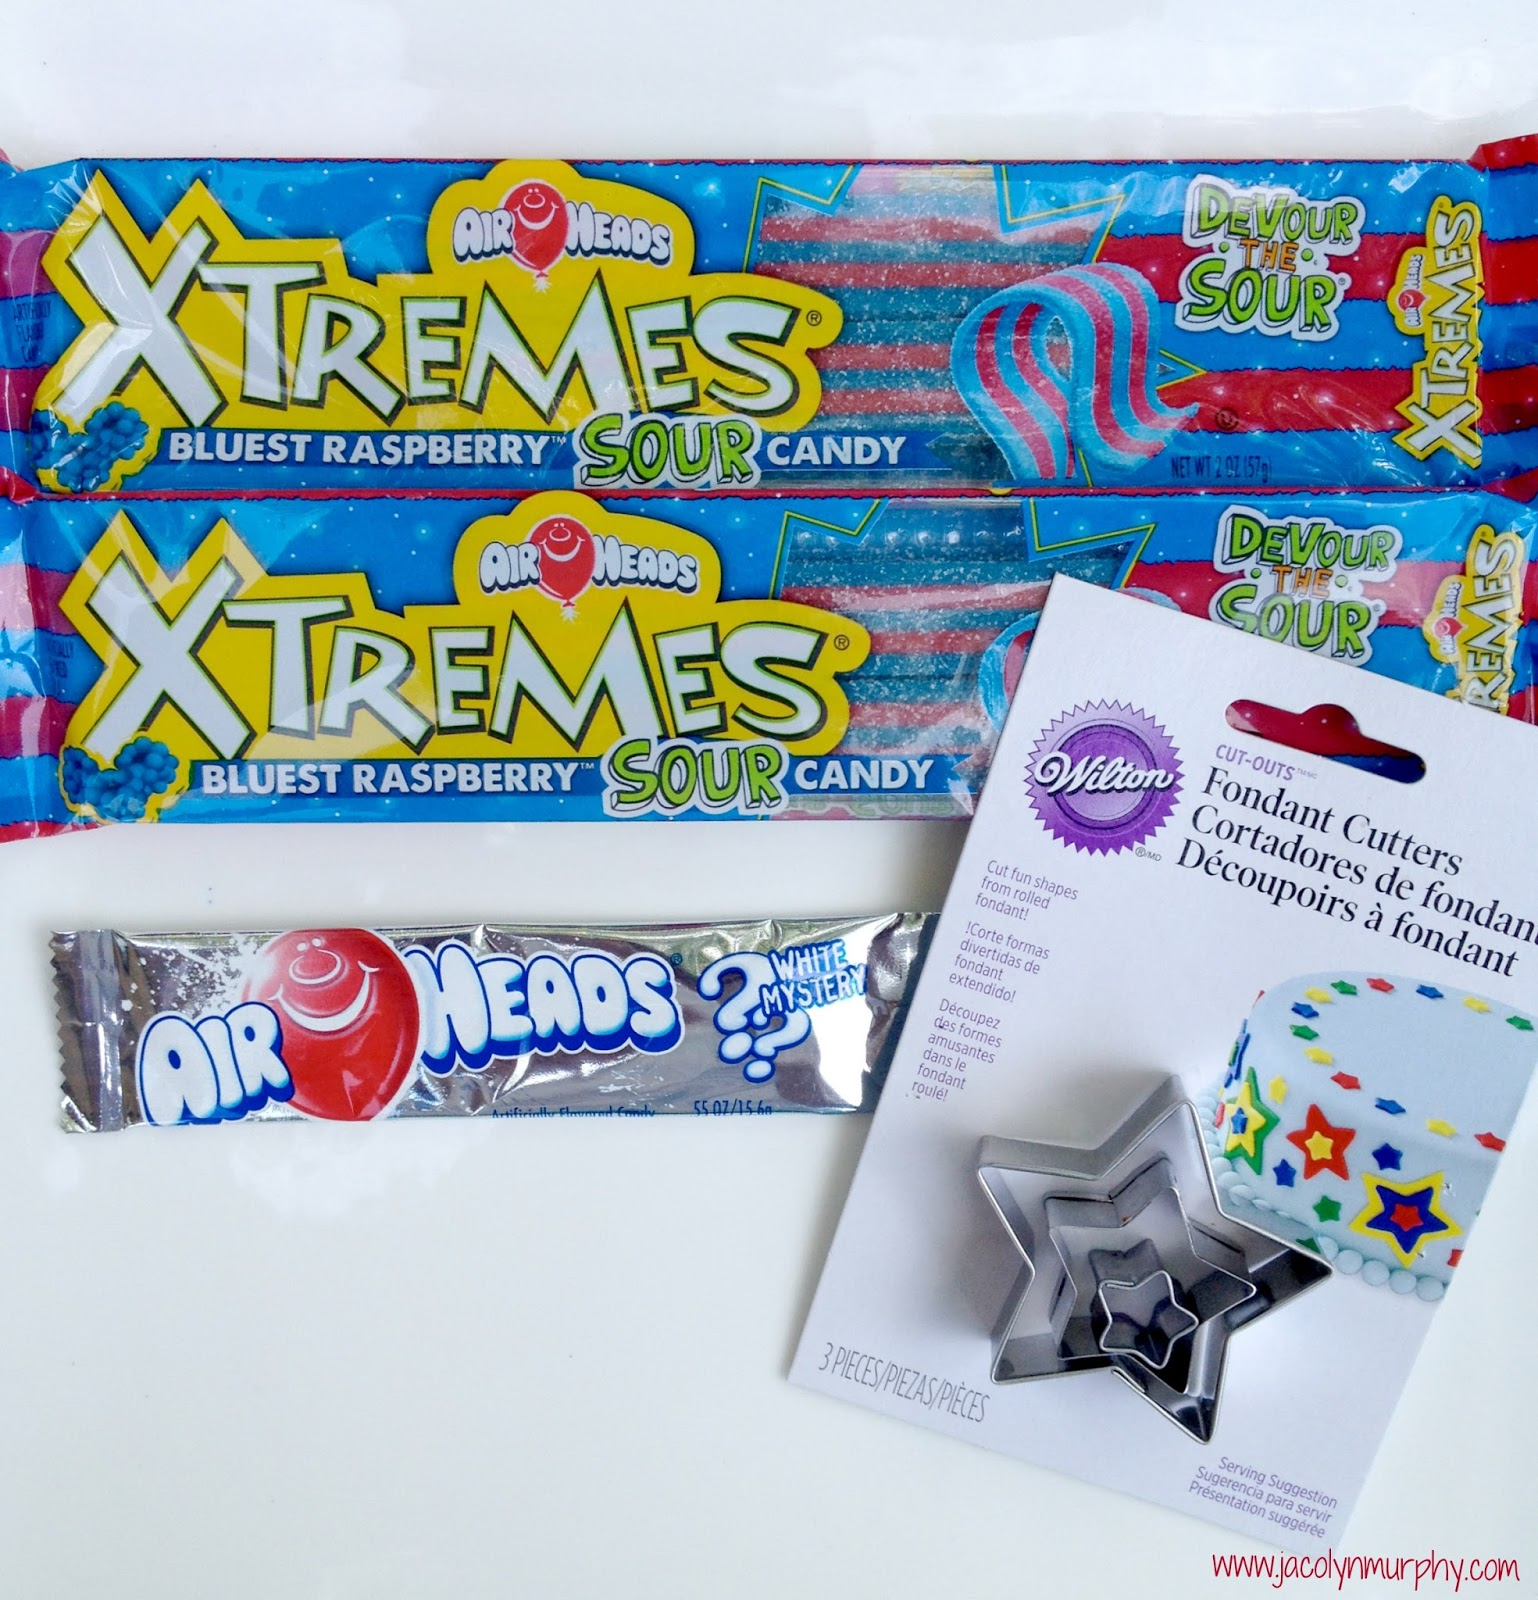 Jac o' lyn Murphy: Airheads love Independence Day! Candy